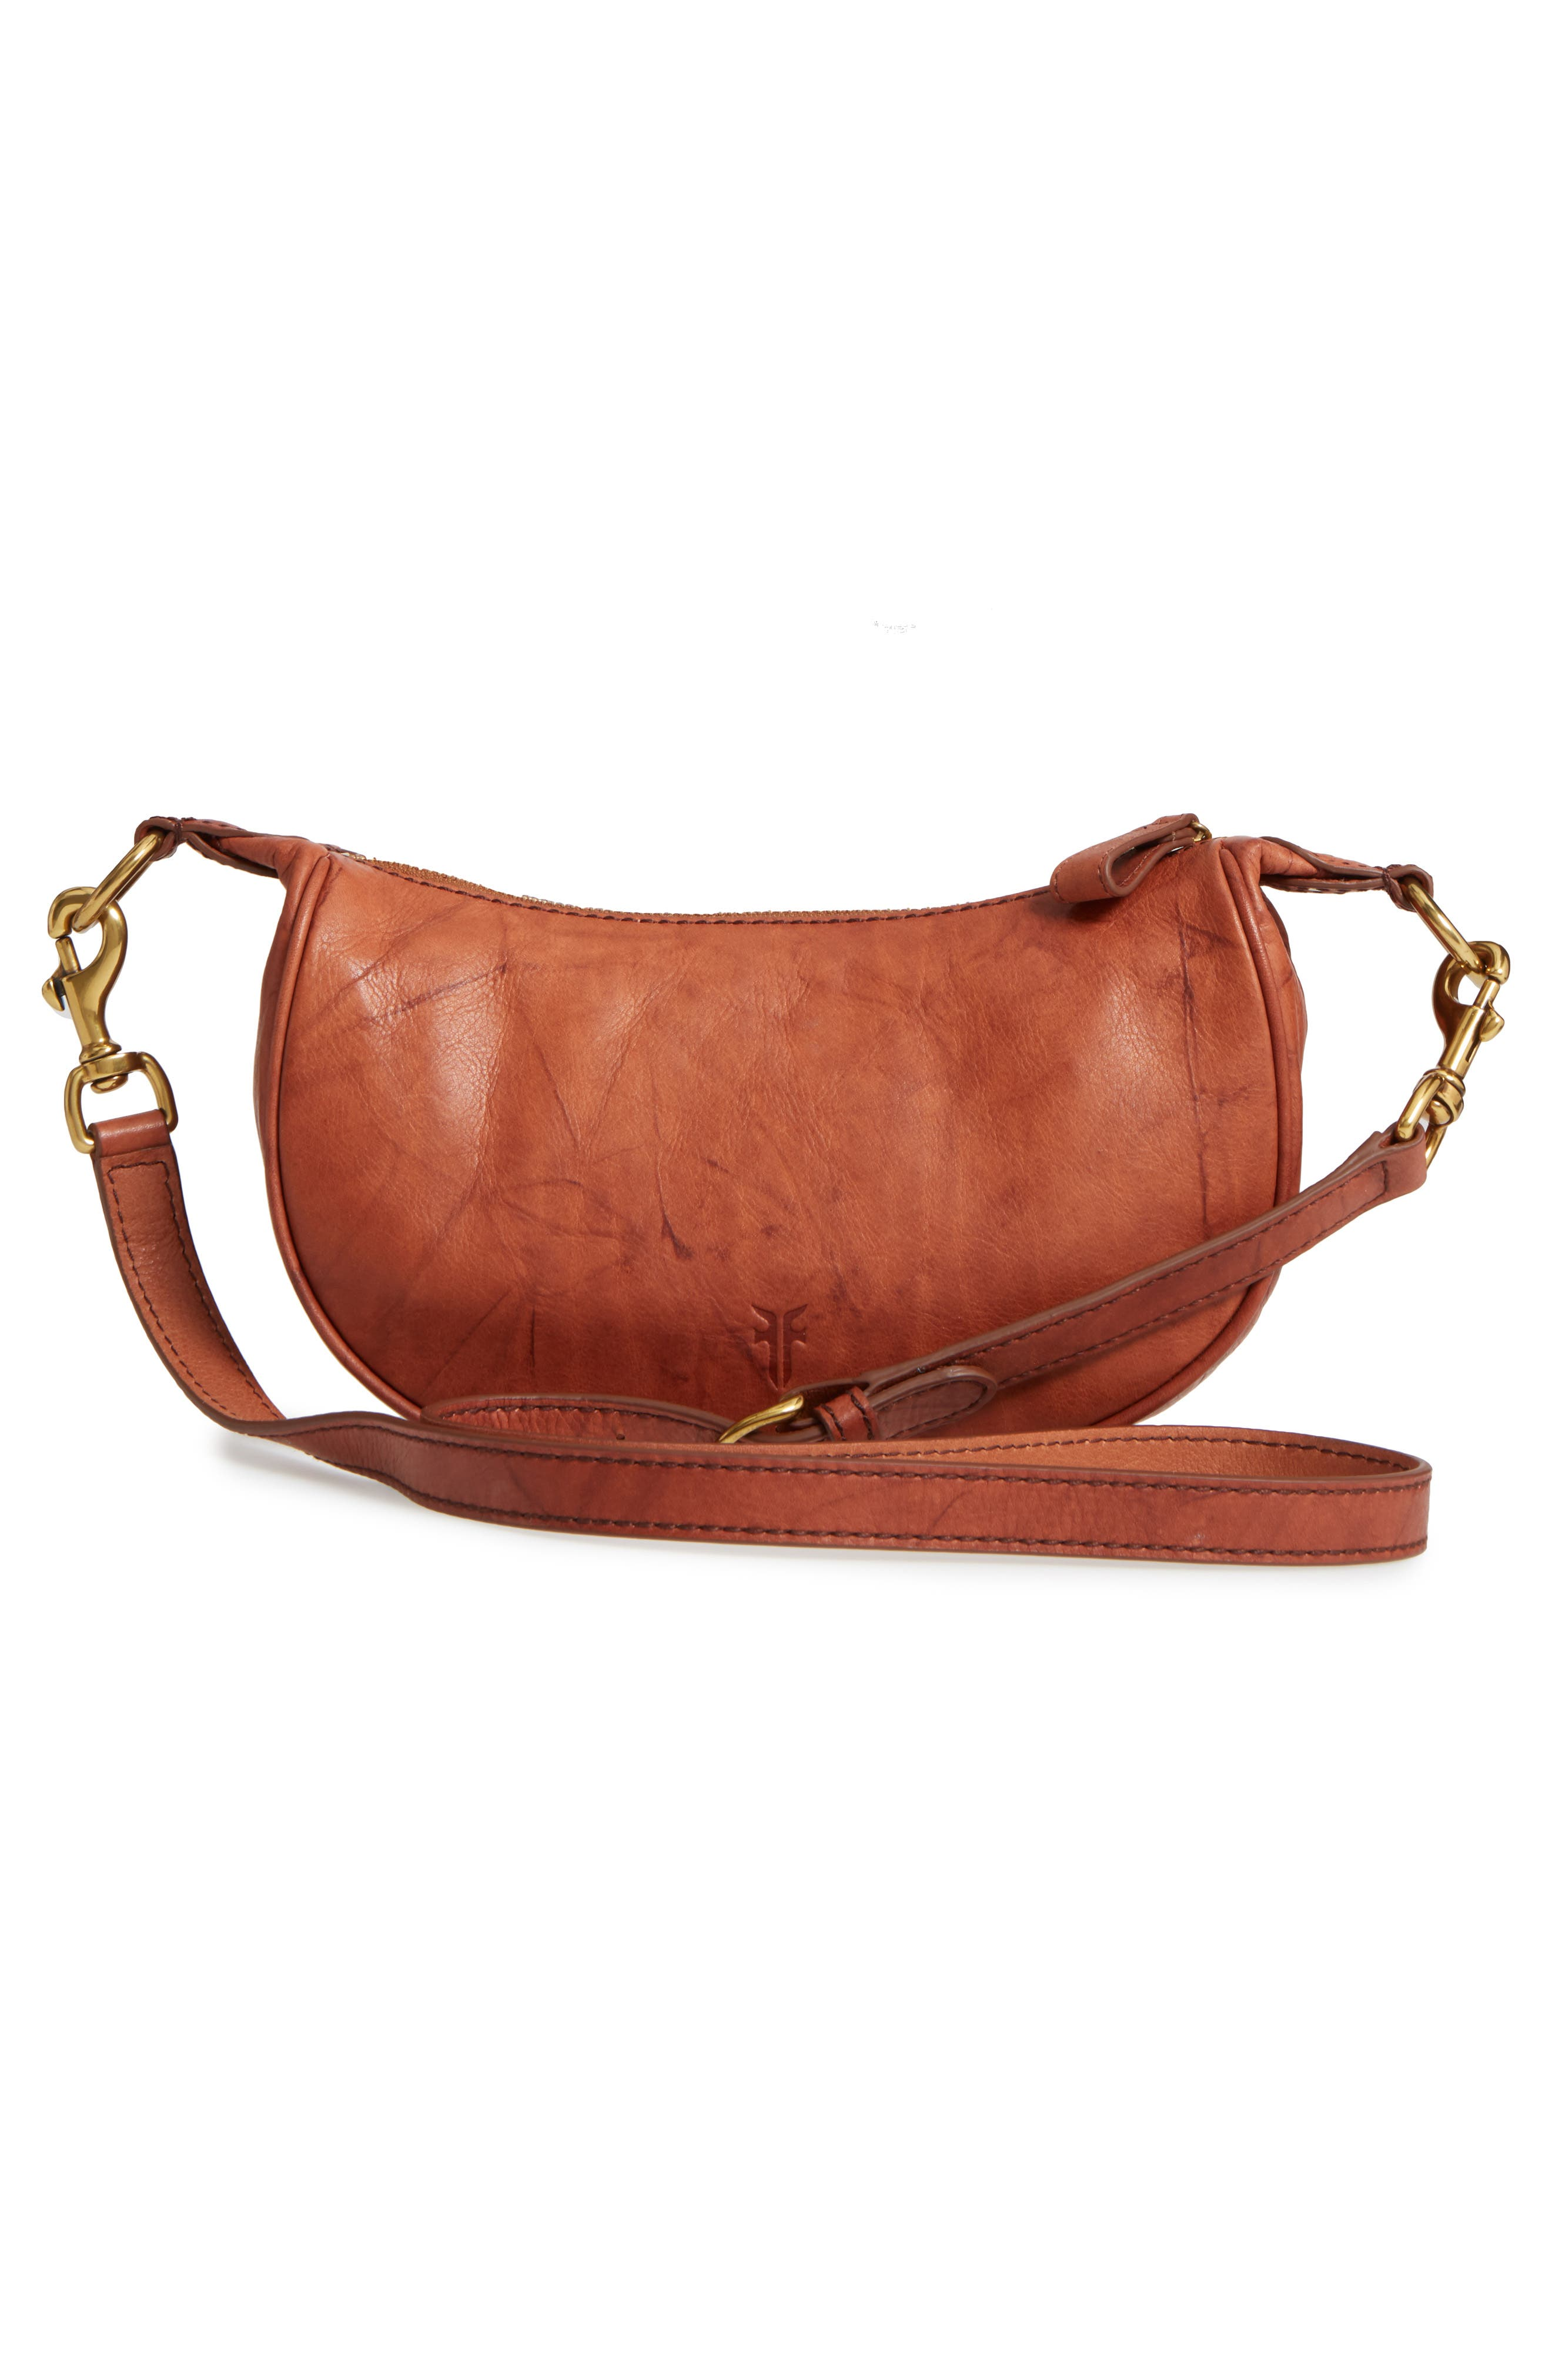 Small Campus Leather Crossbody Bag,                             Alternate thumbnail 3, color,                             Saddle